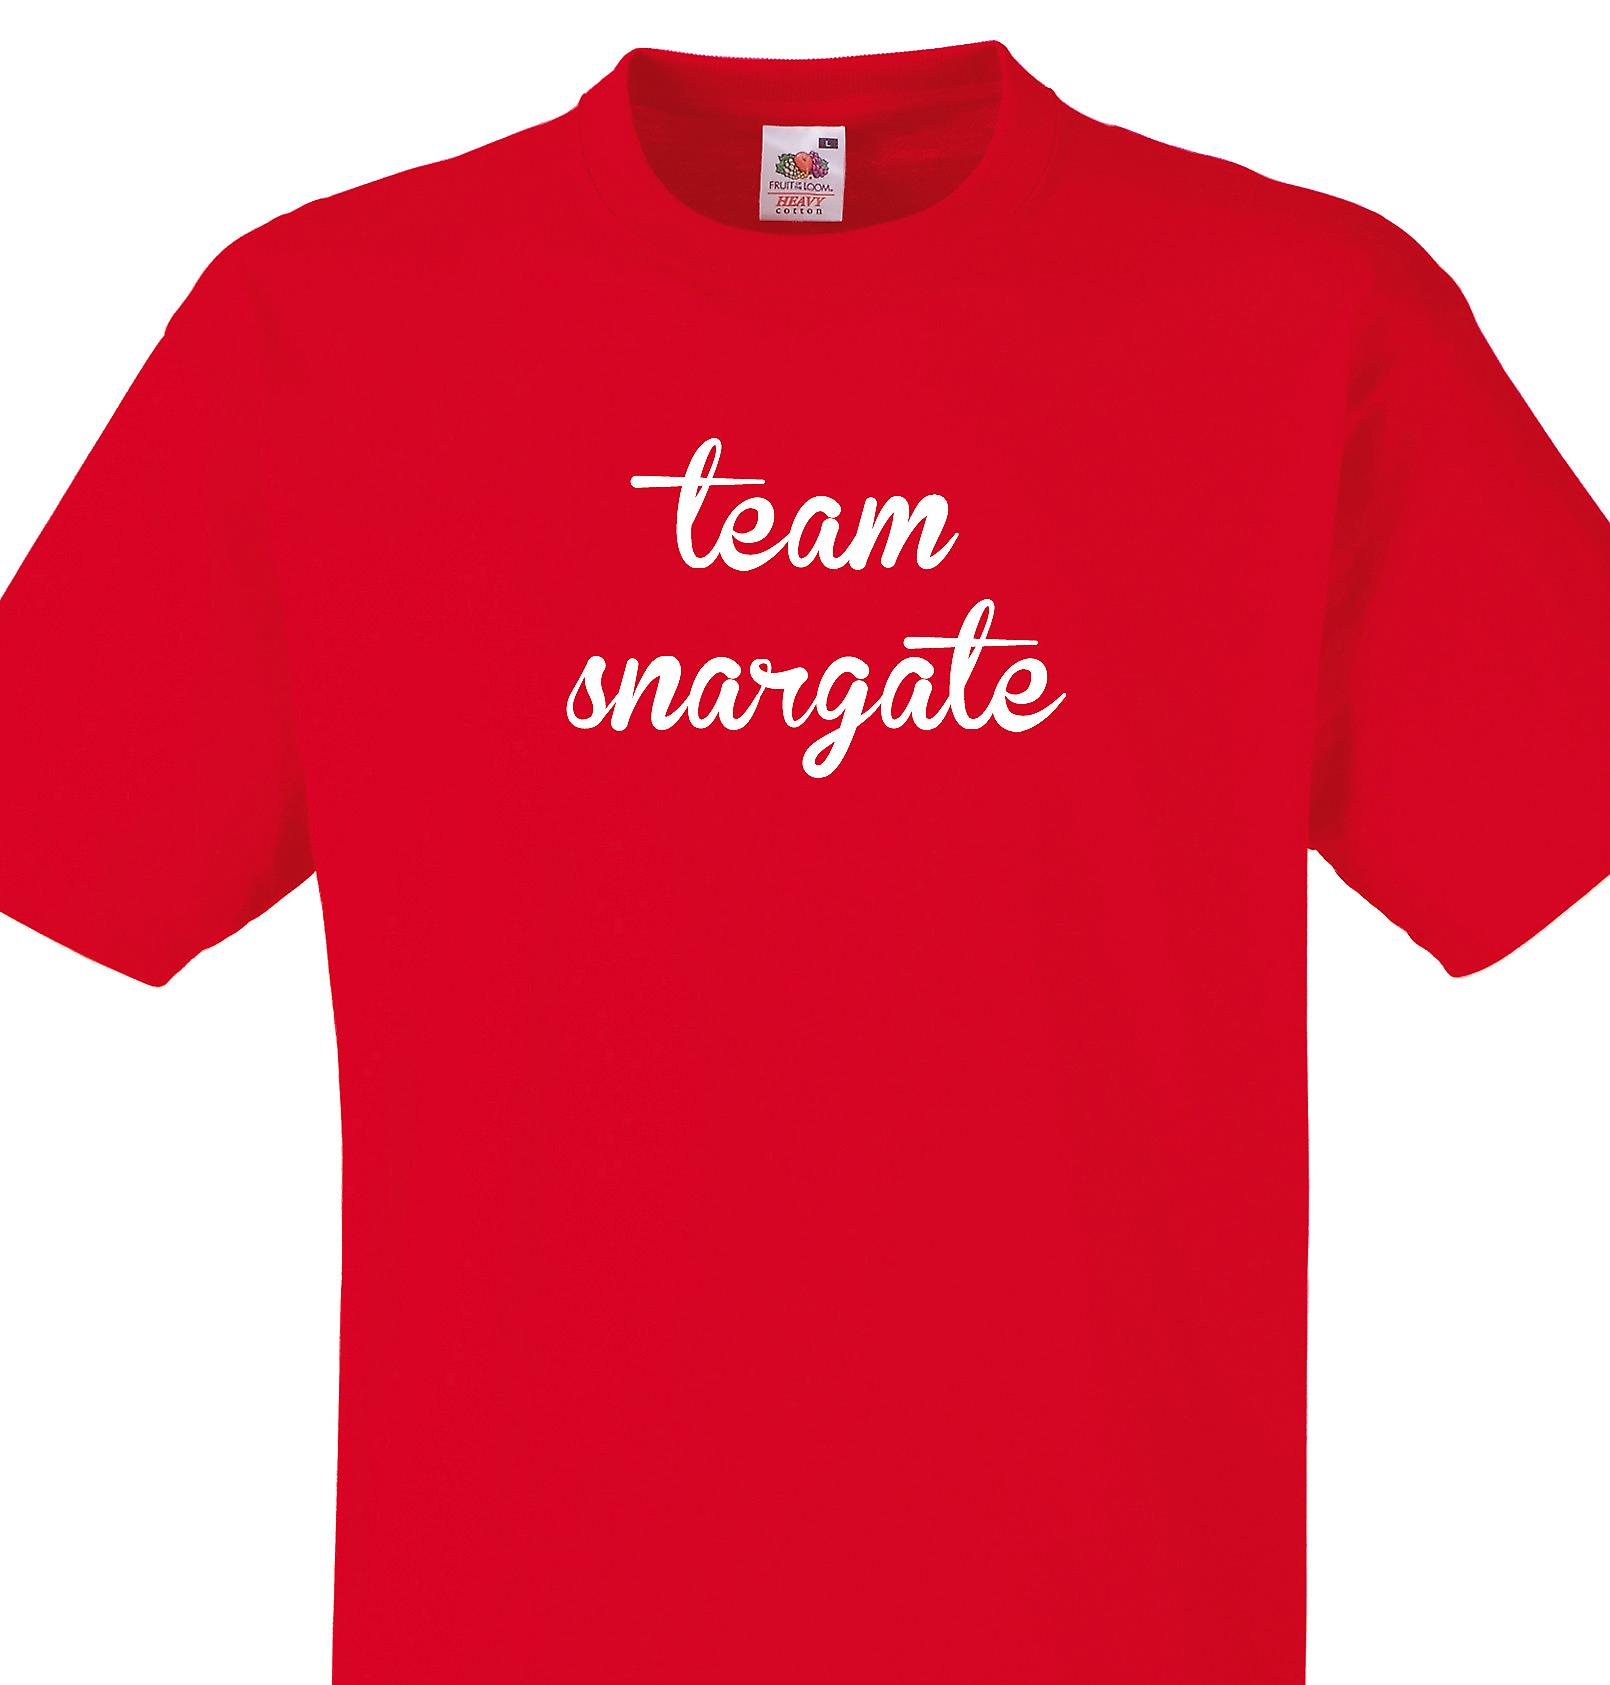 Team Snargate Red T shirt